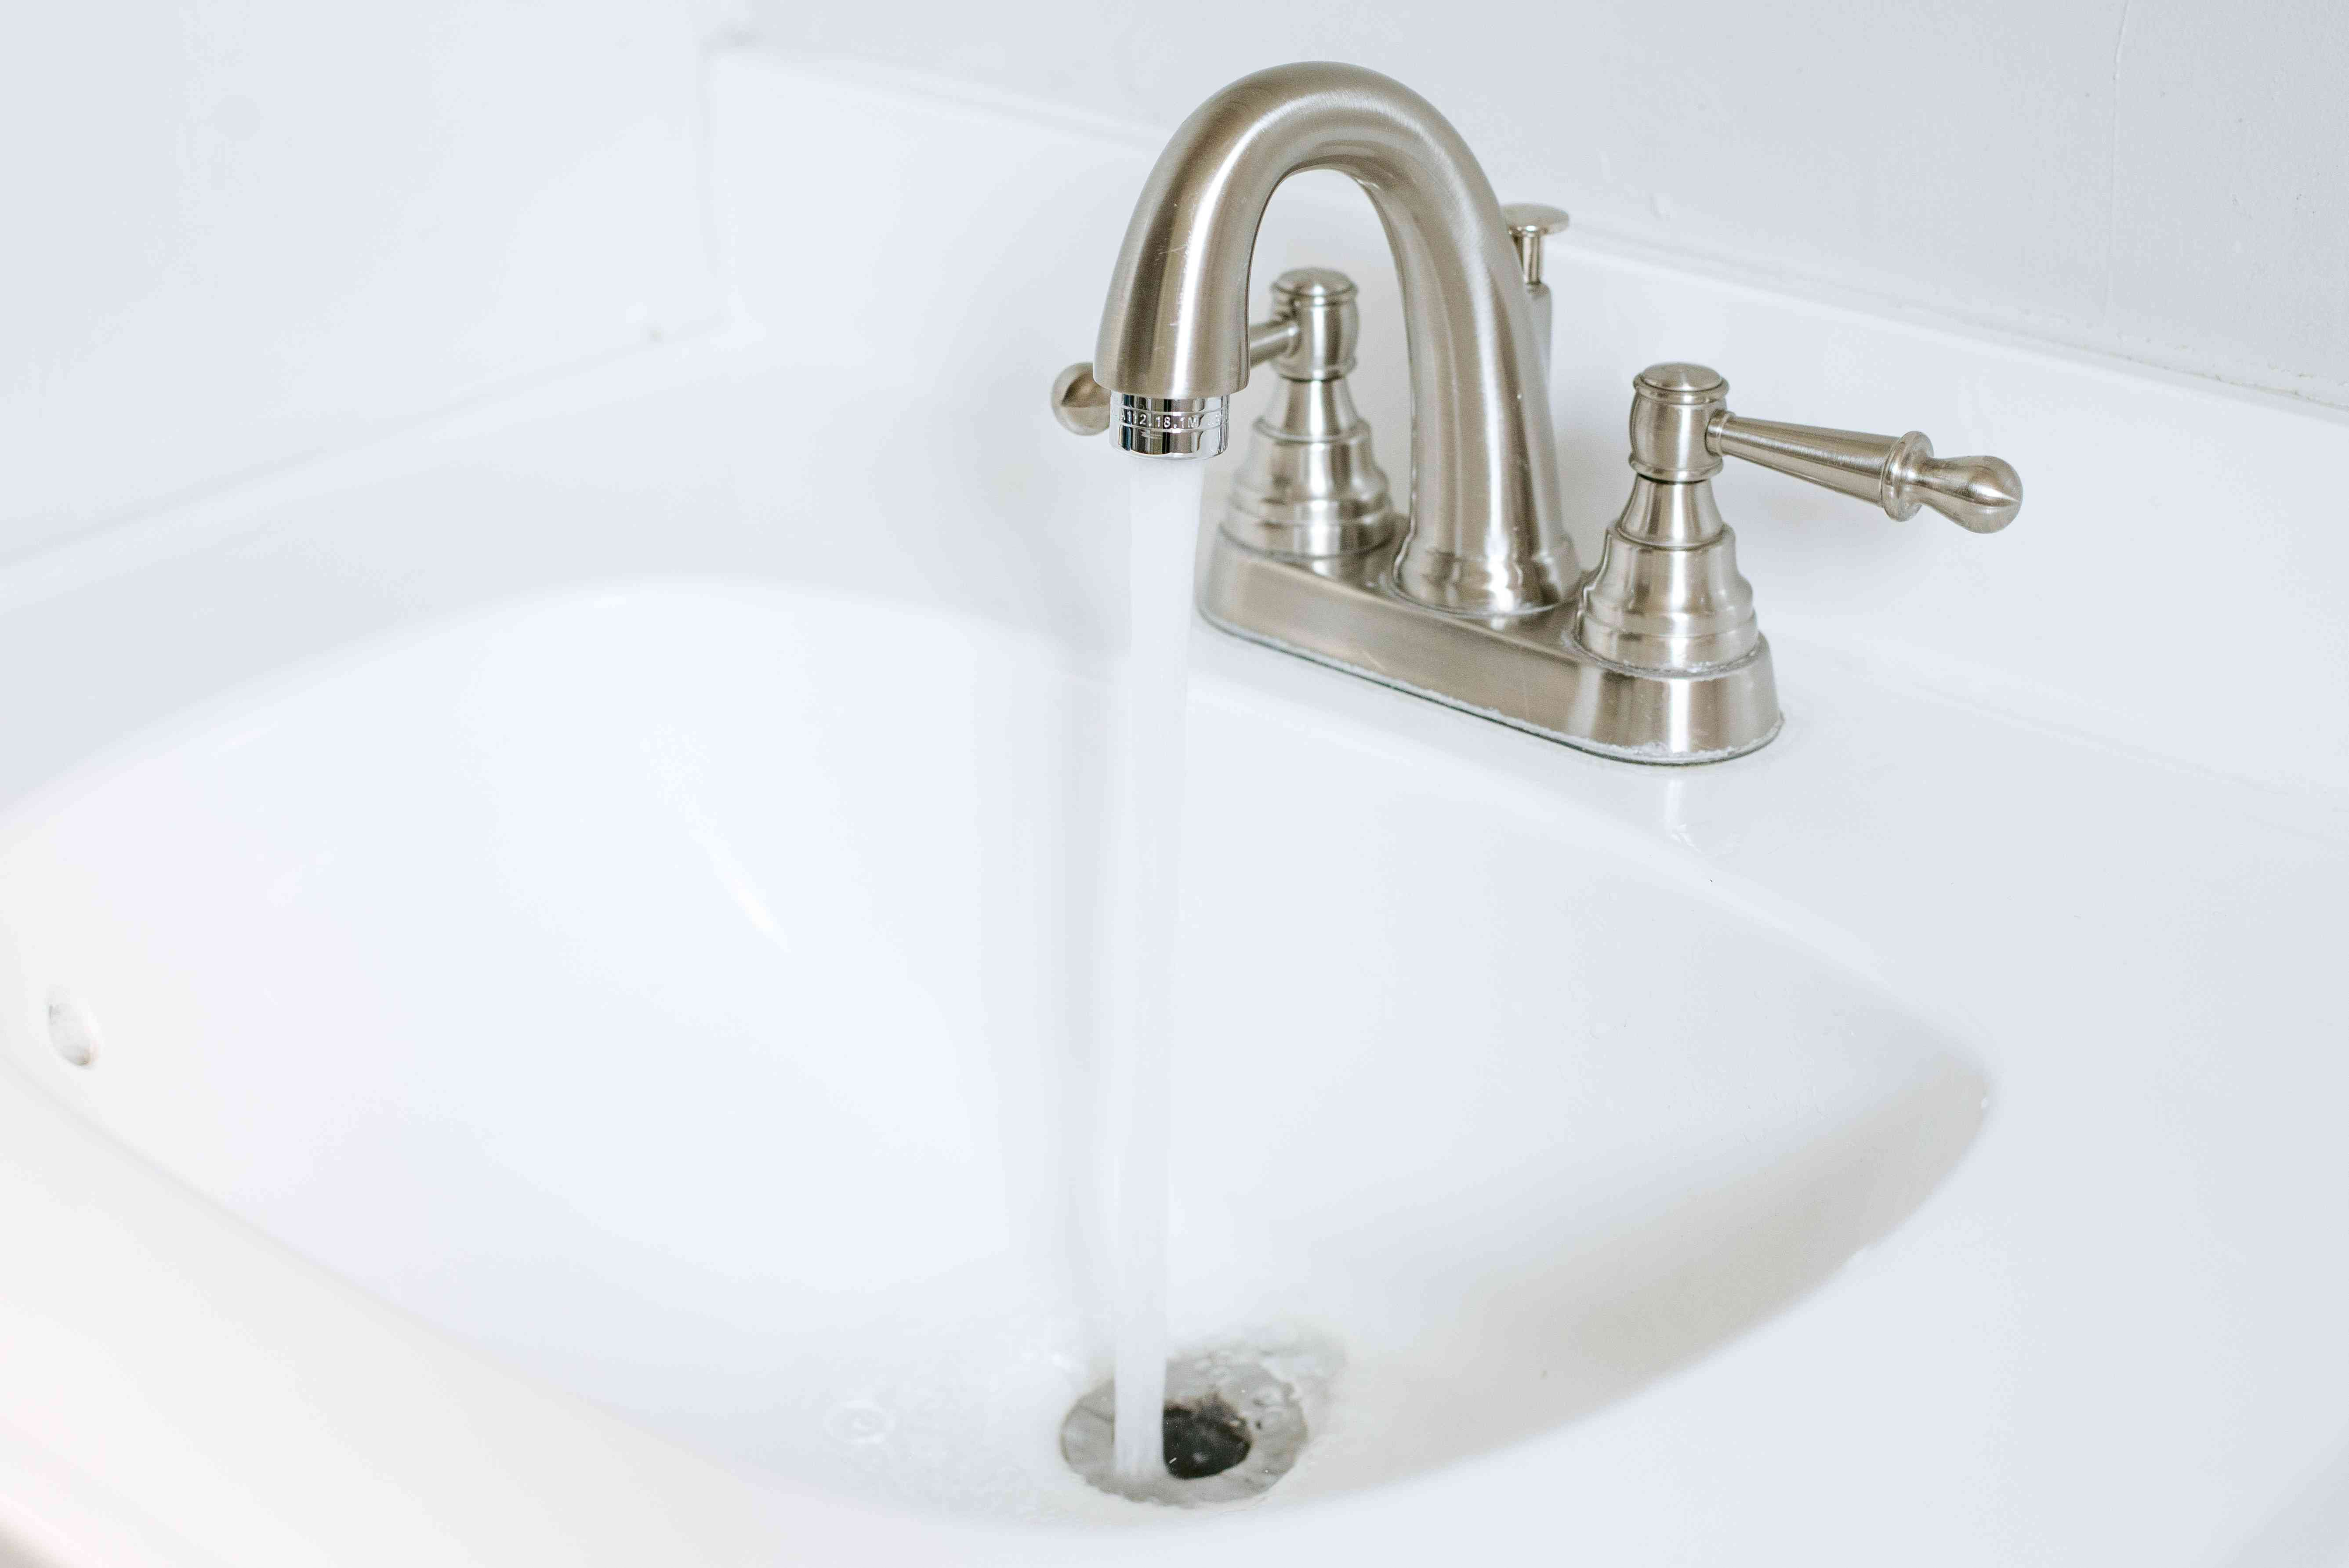 Faucet running hot water down sink drain to flush